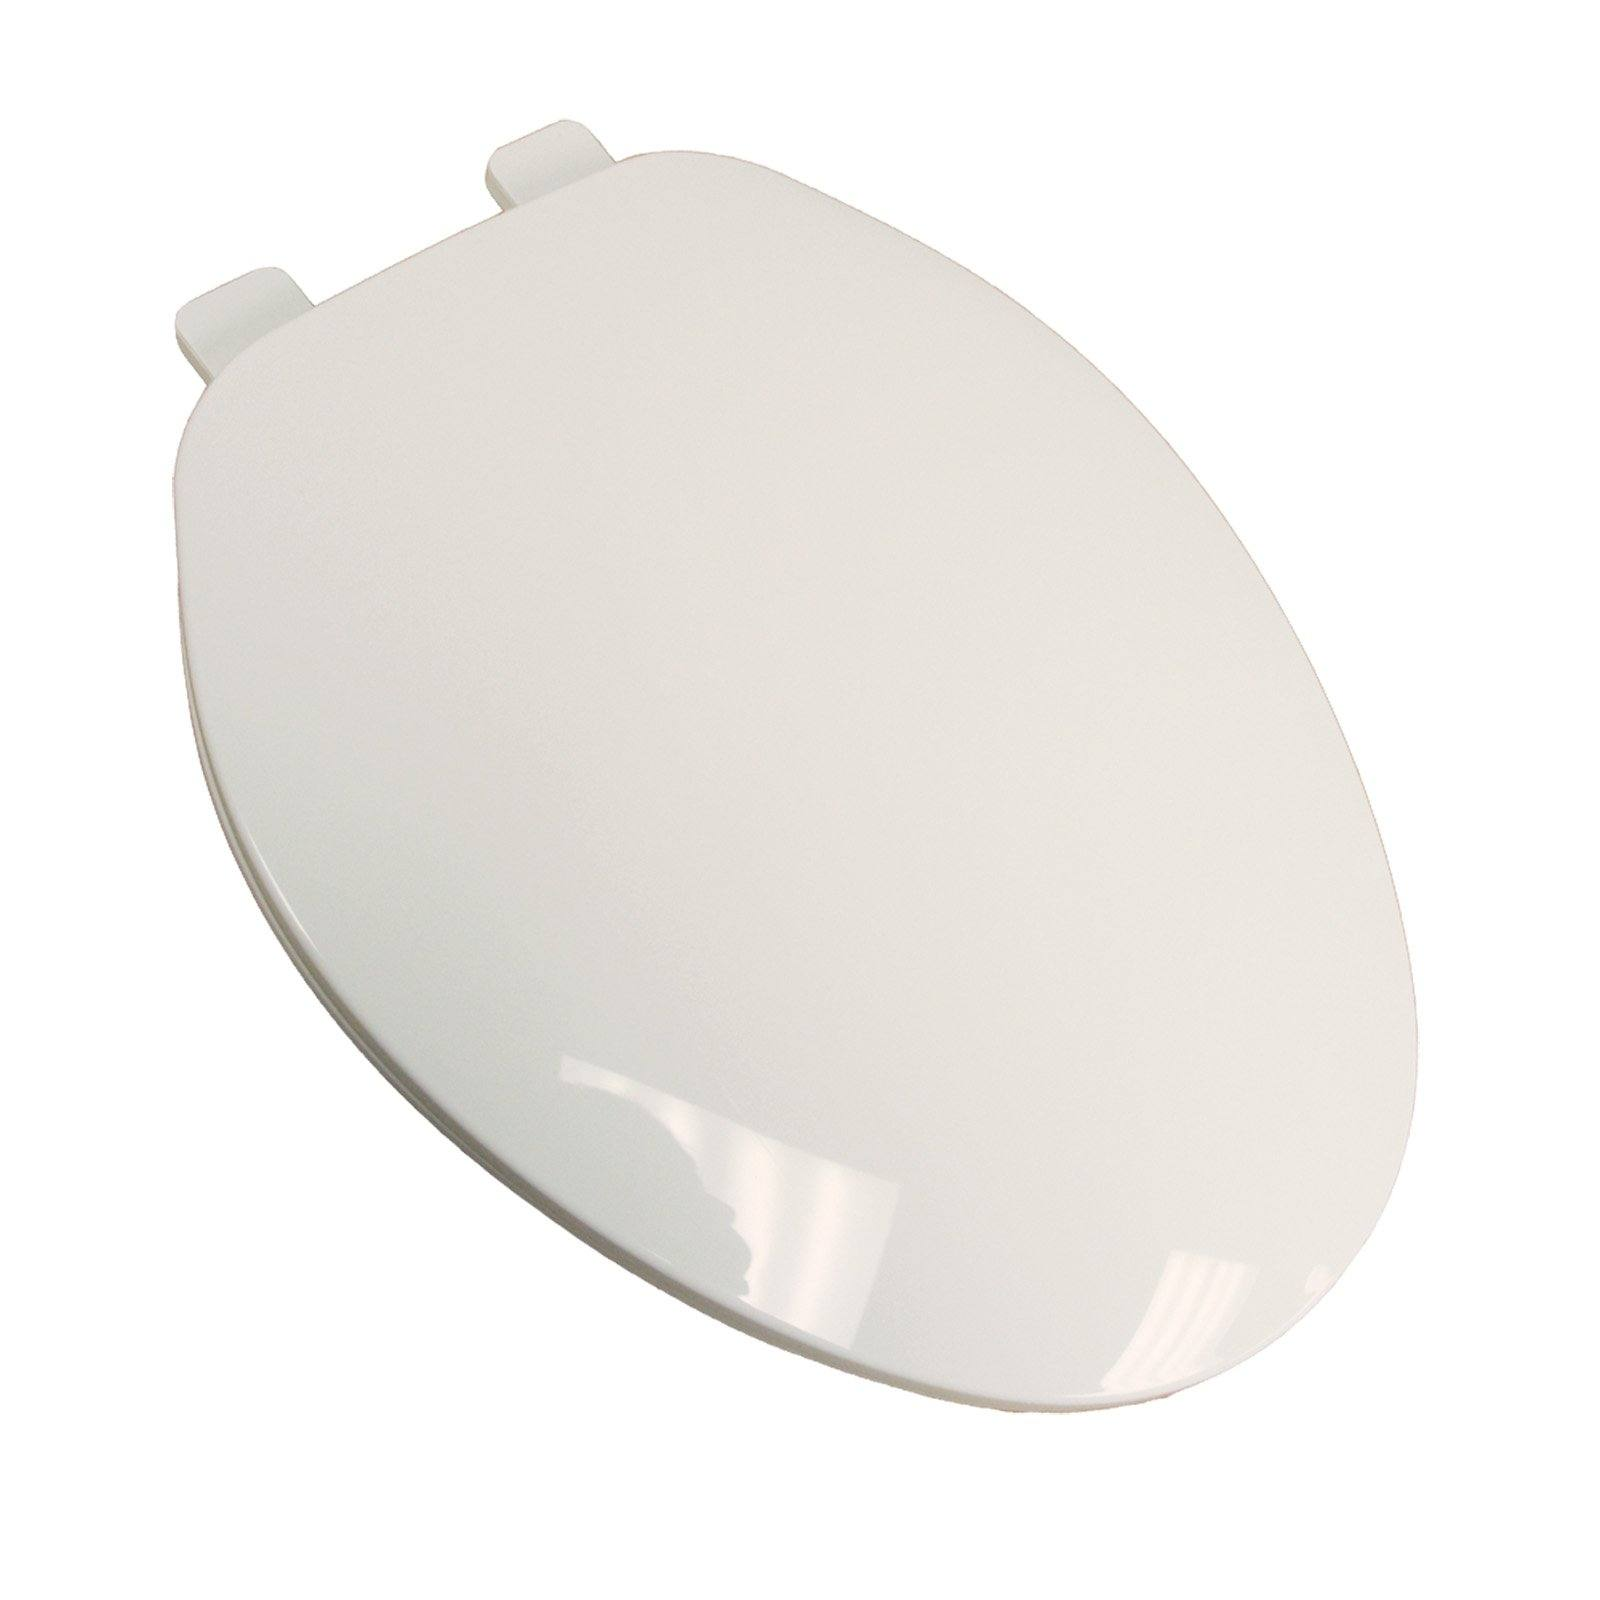 Builder Grade Plastic Toilet Seat, White, Elongated Closed Front with Cover